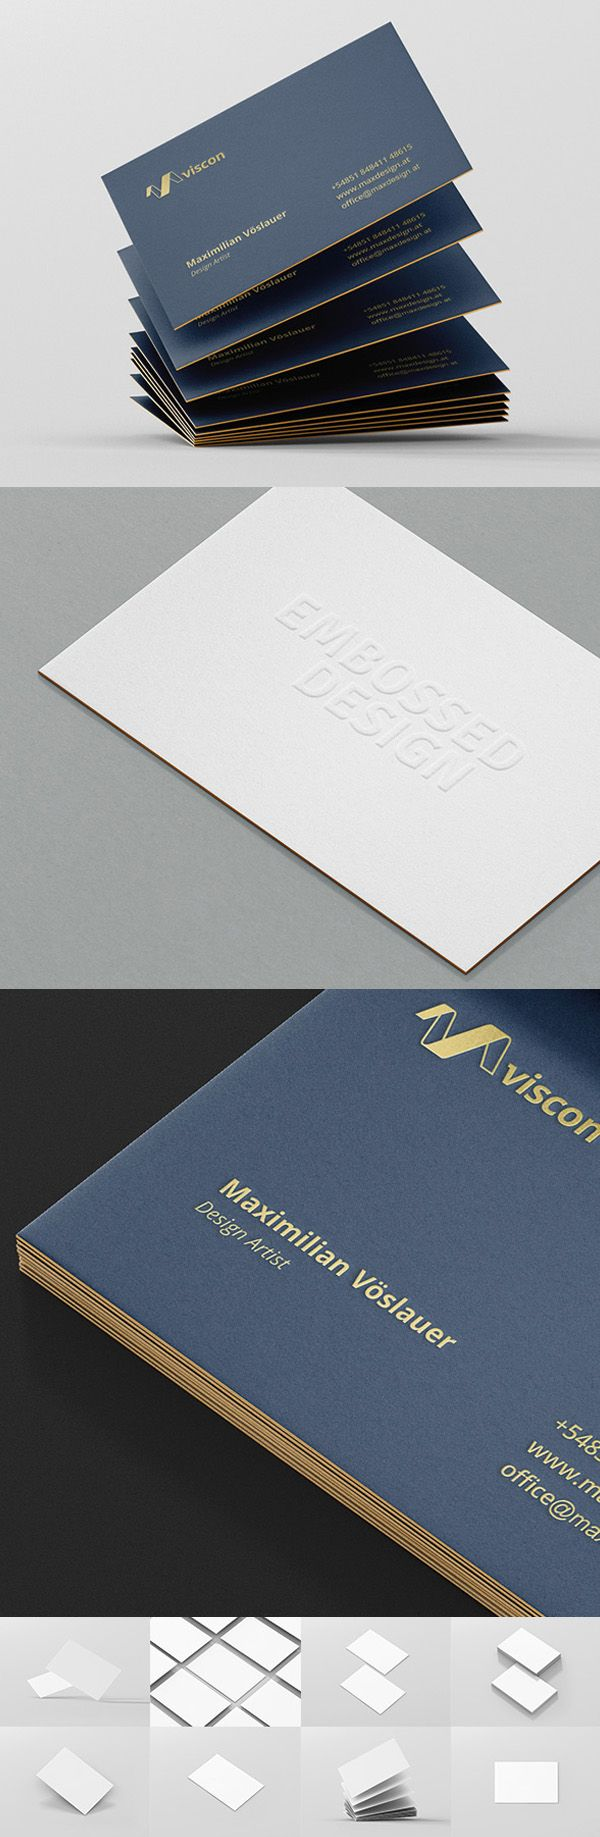 Photorealistic Mockups of Business Cards psd mockups, product ...